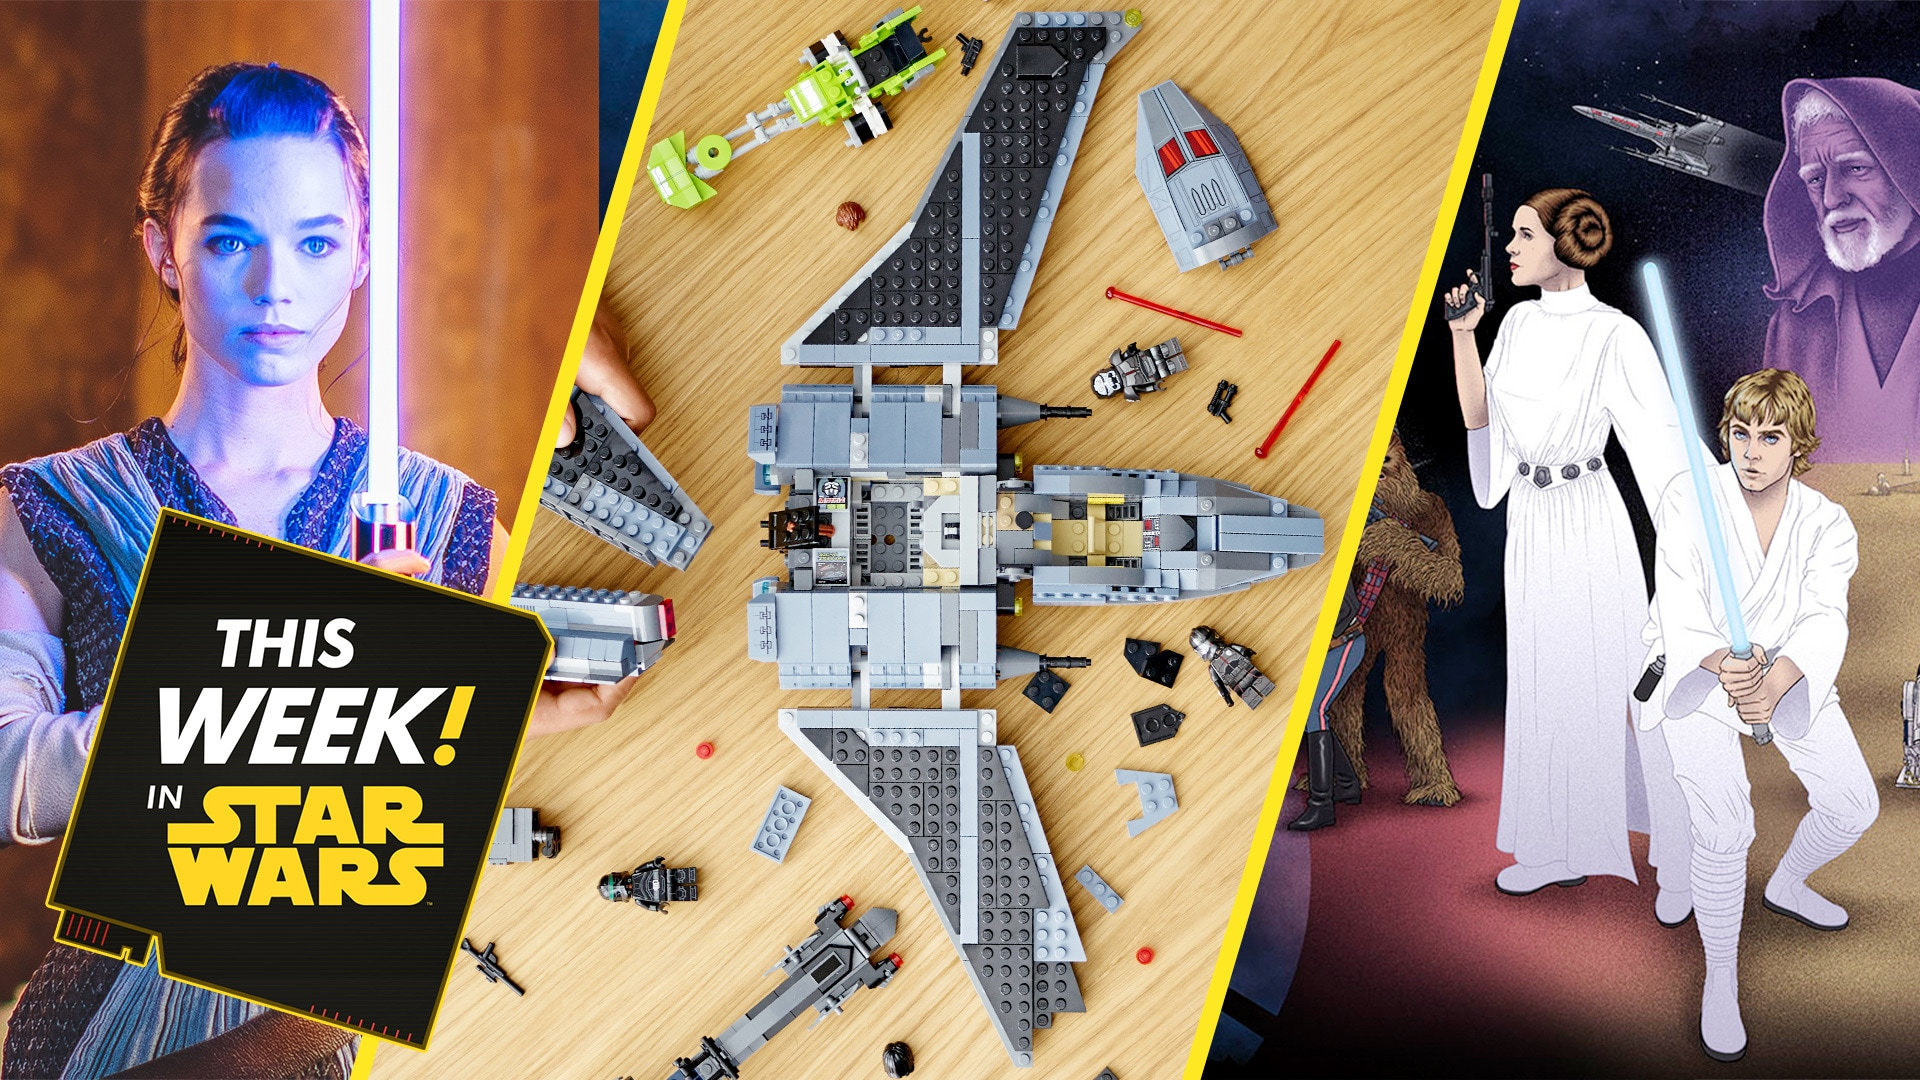 The Bad Batch Has Arrived, Hyperspace Lounge Visits Endor, and More!